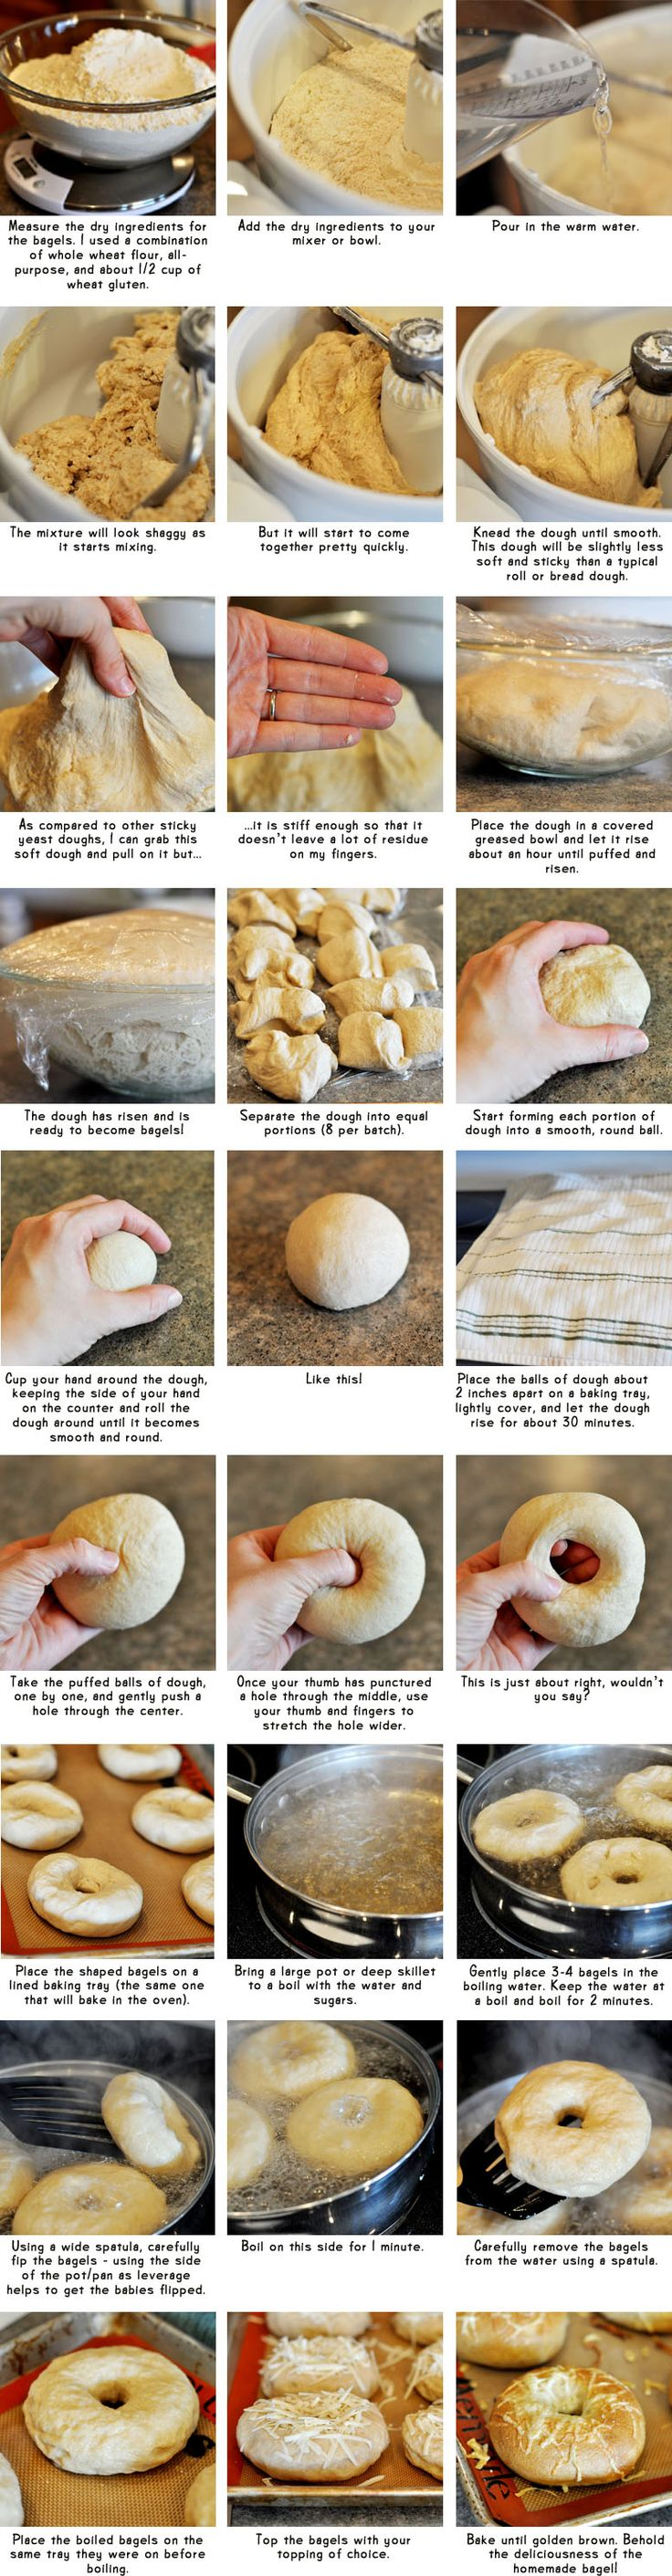 Mels Kitchen Cafe | Homemade Bagels Step-by-Step